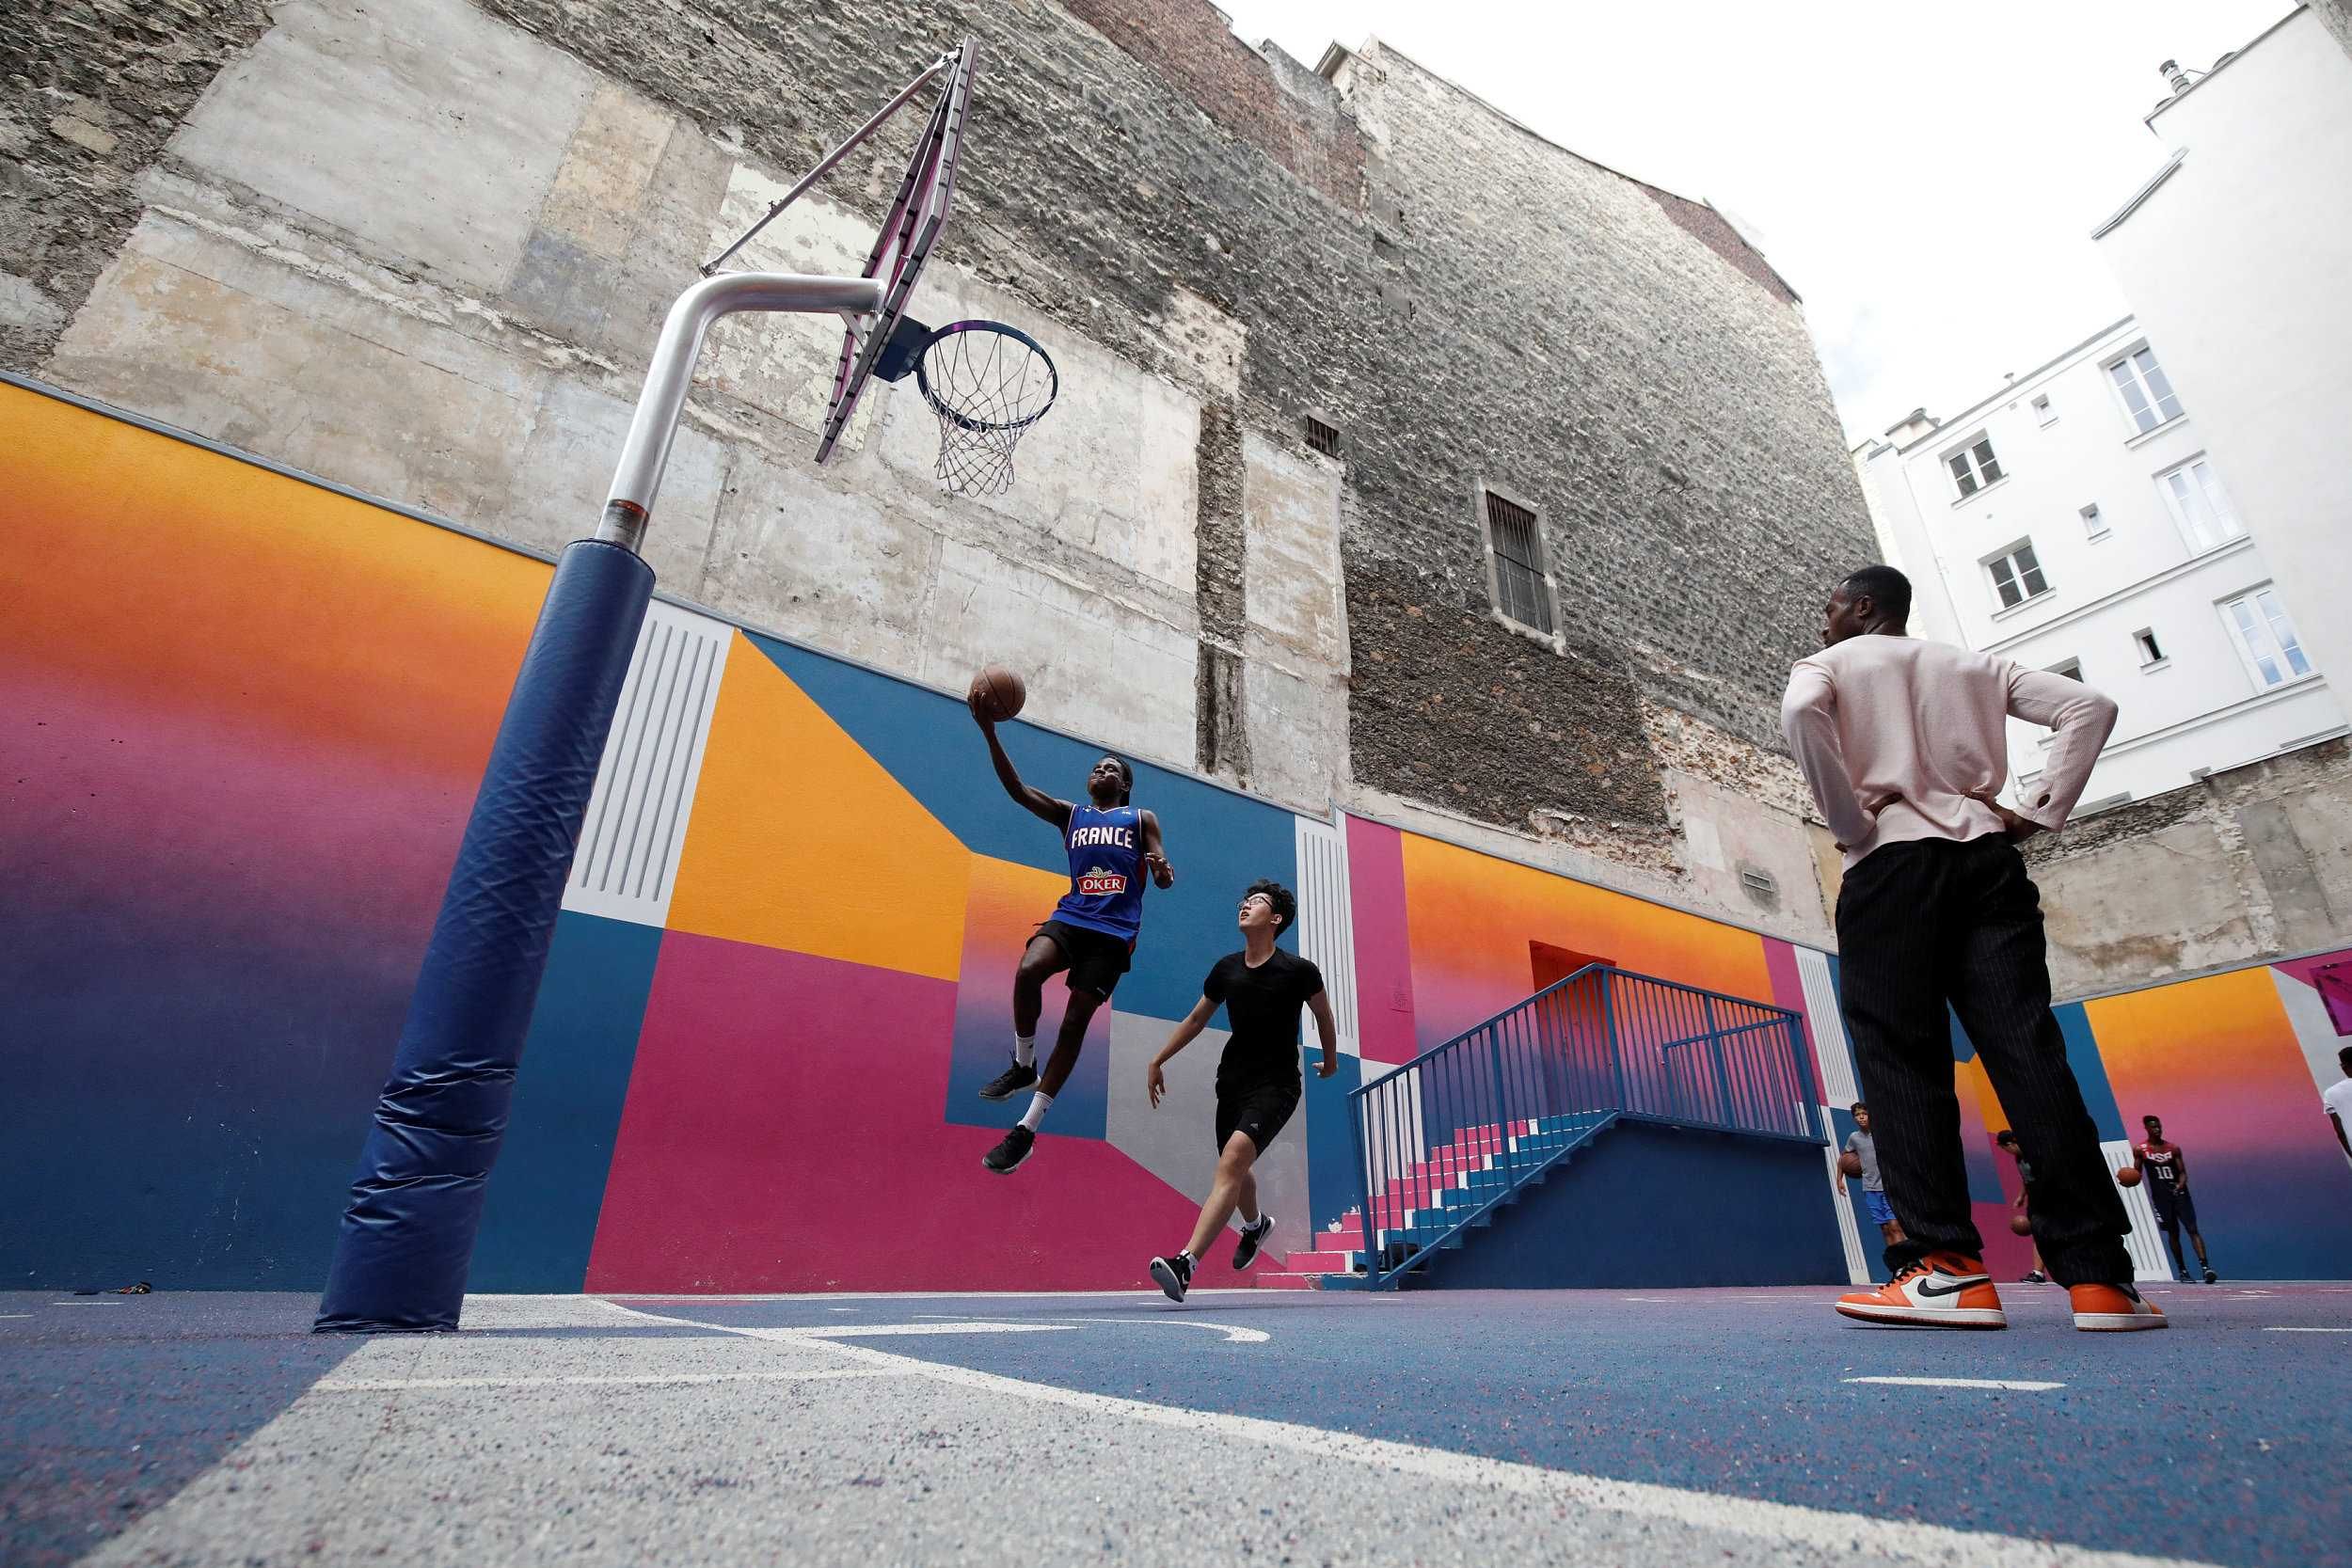 World's oldest still-in-use basketball court irradiating new life